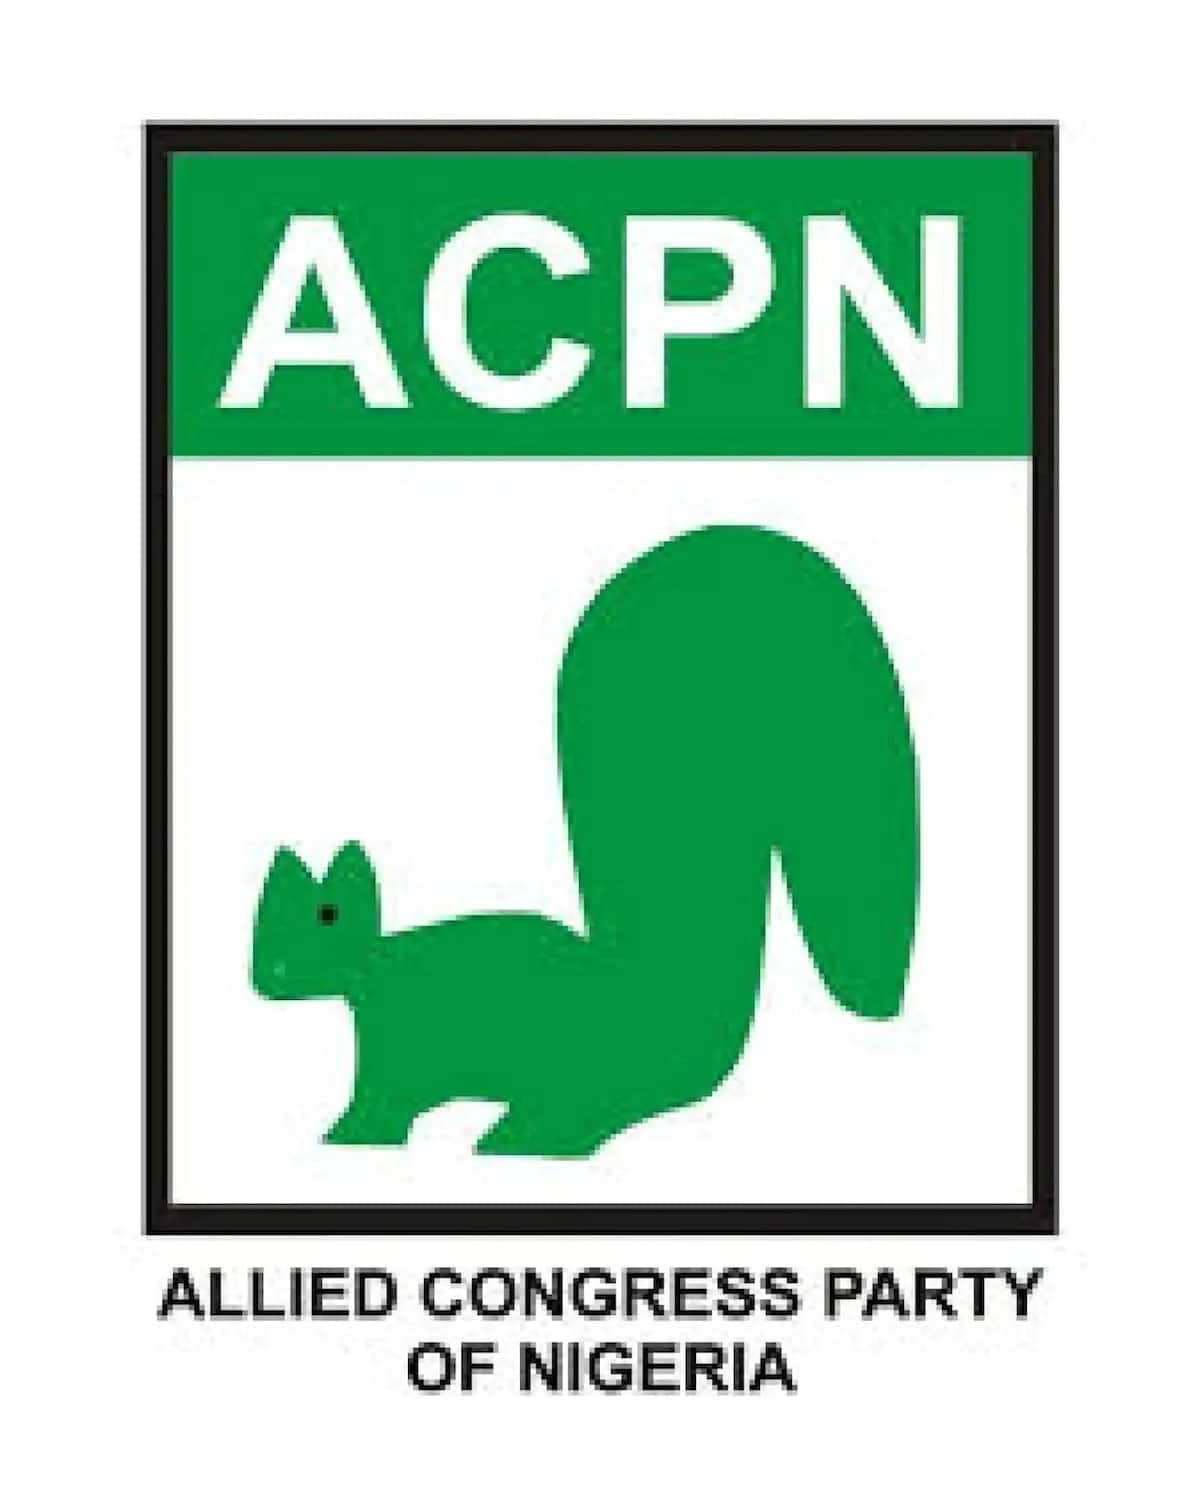 Allied Congress Party of Nigeria